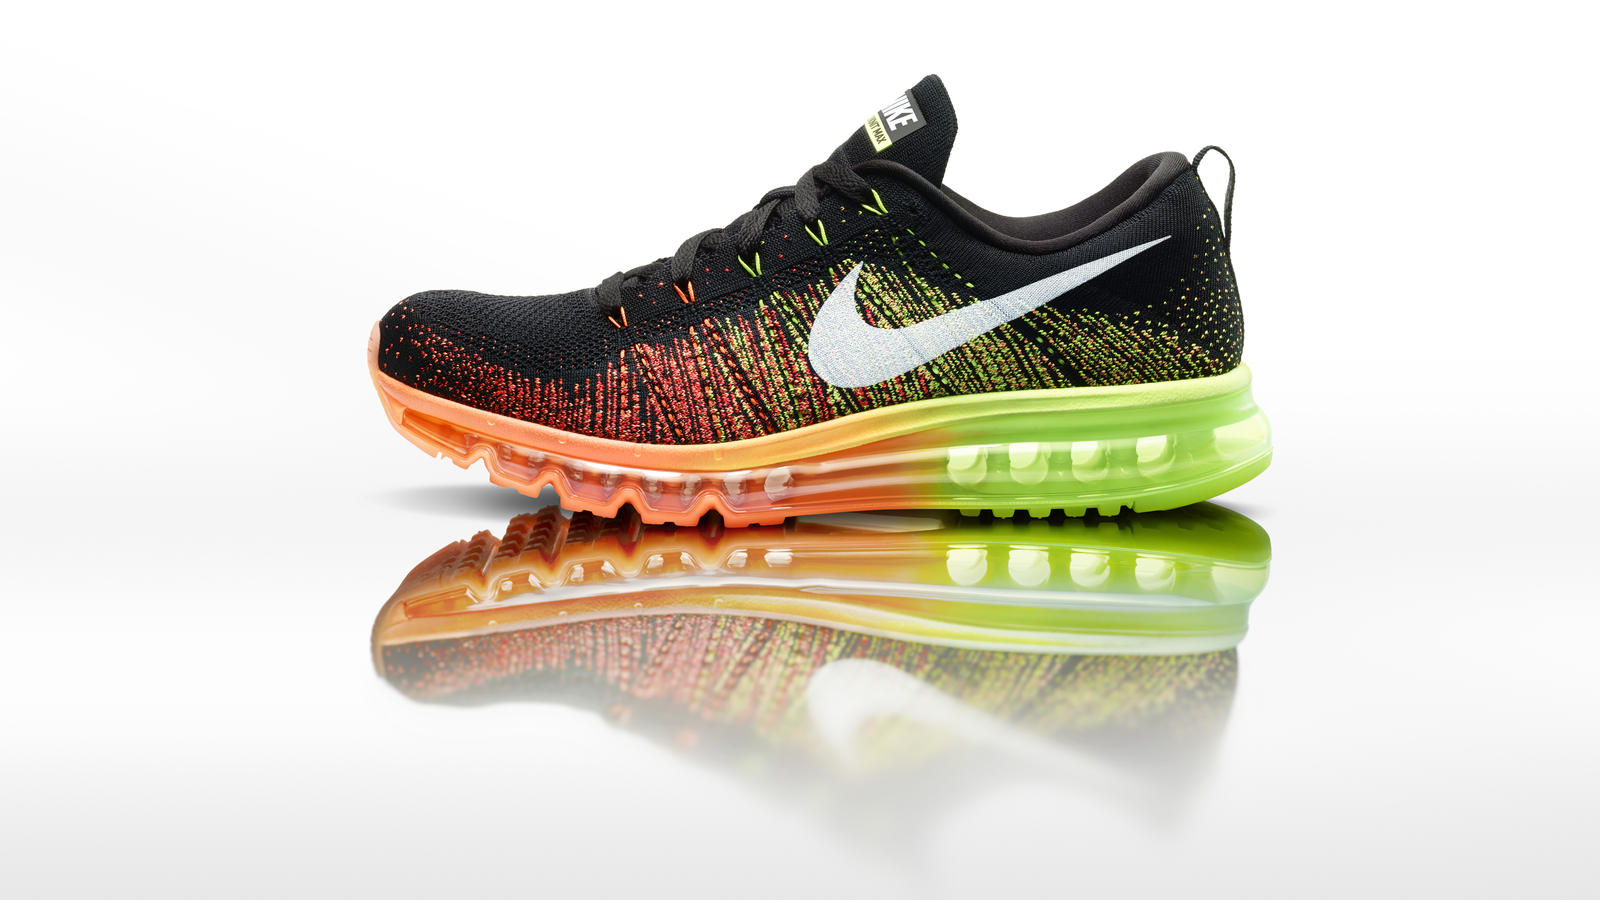 best website 36371 b0256 nike flyknit air max mens profile. nike flyknit air max womens profile.  nike flyknit air max womens detail3. nike air max 2014 womens detail1